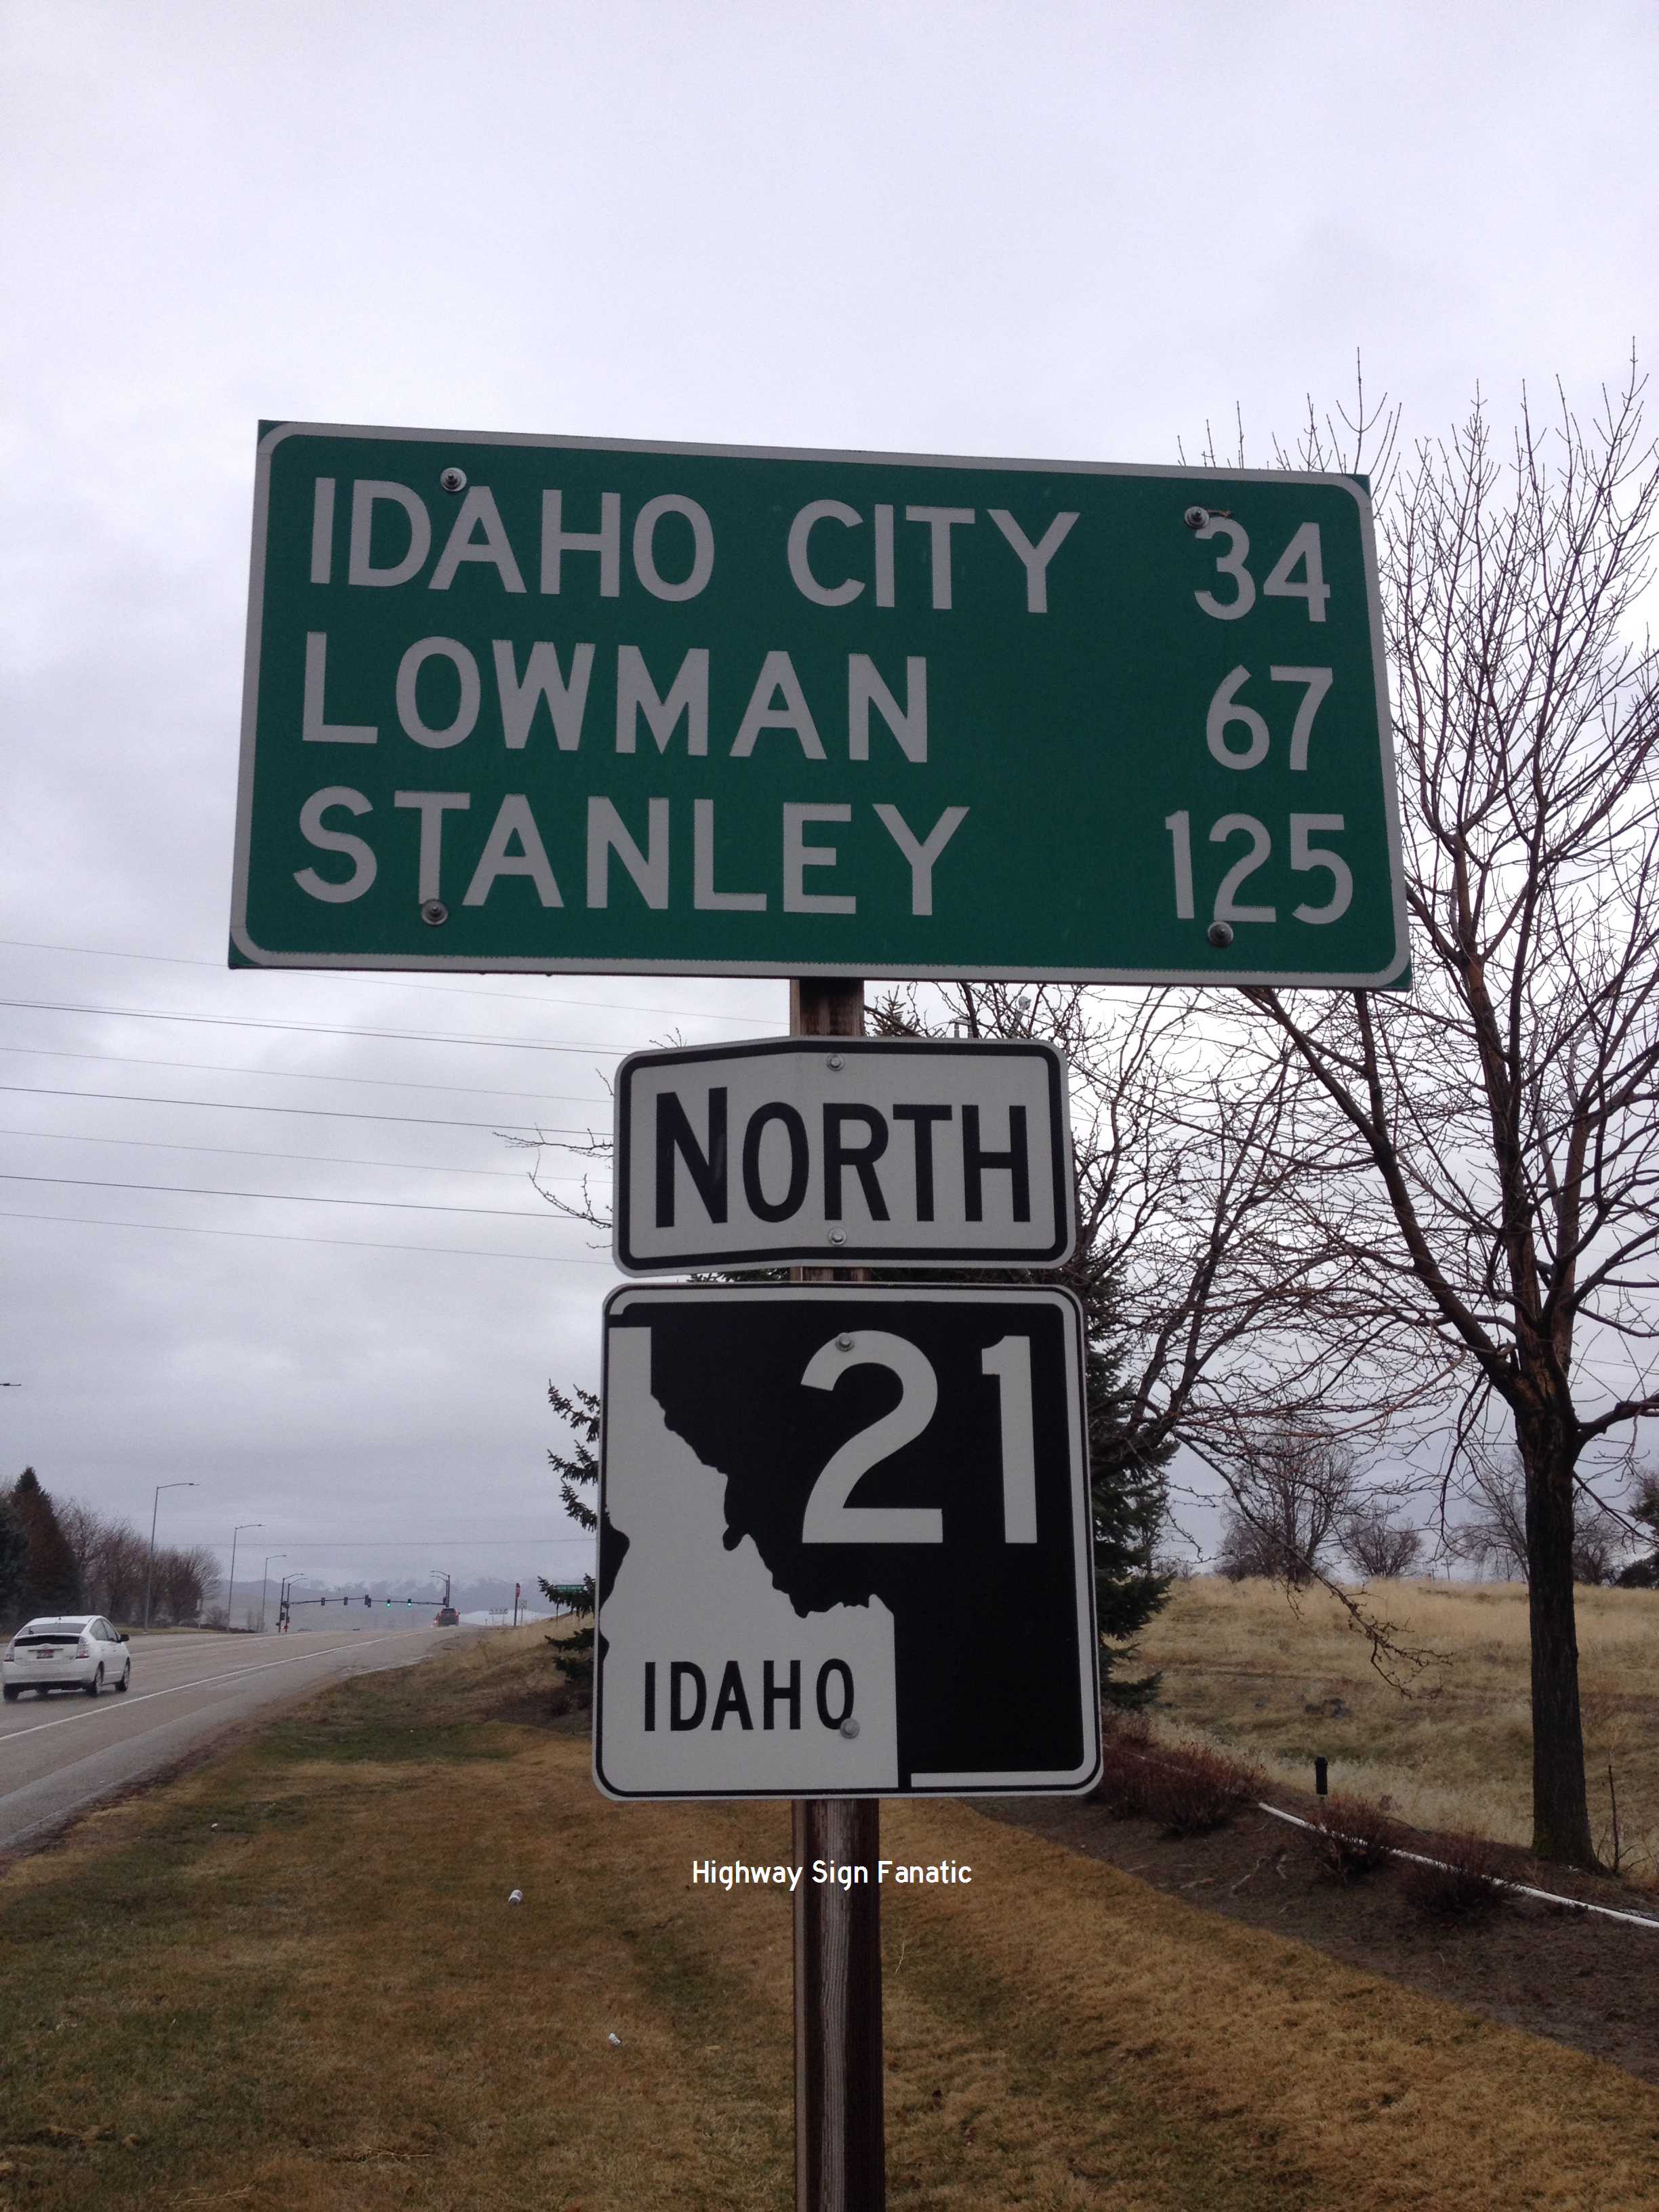 IDAHO HIGHWAY 21 – HIGHWAY SIGN FANATIC